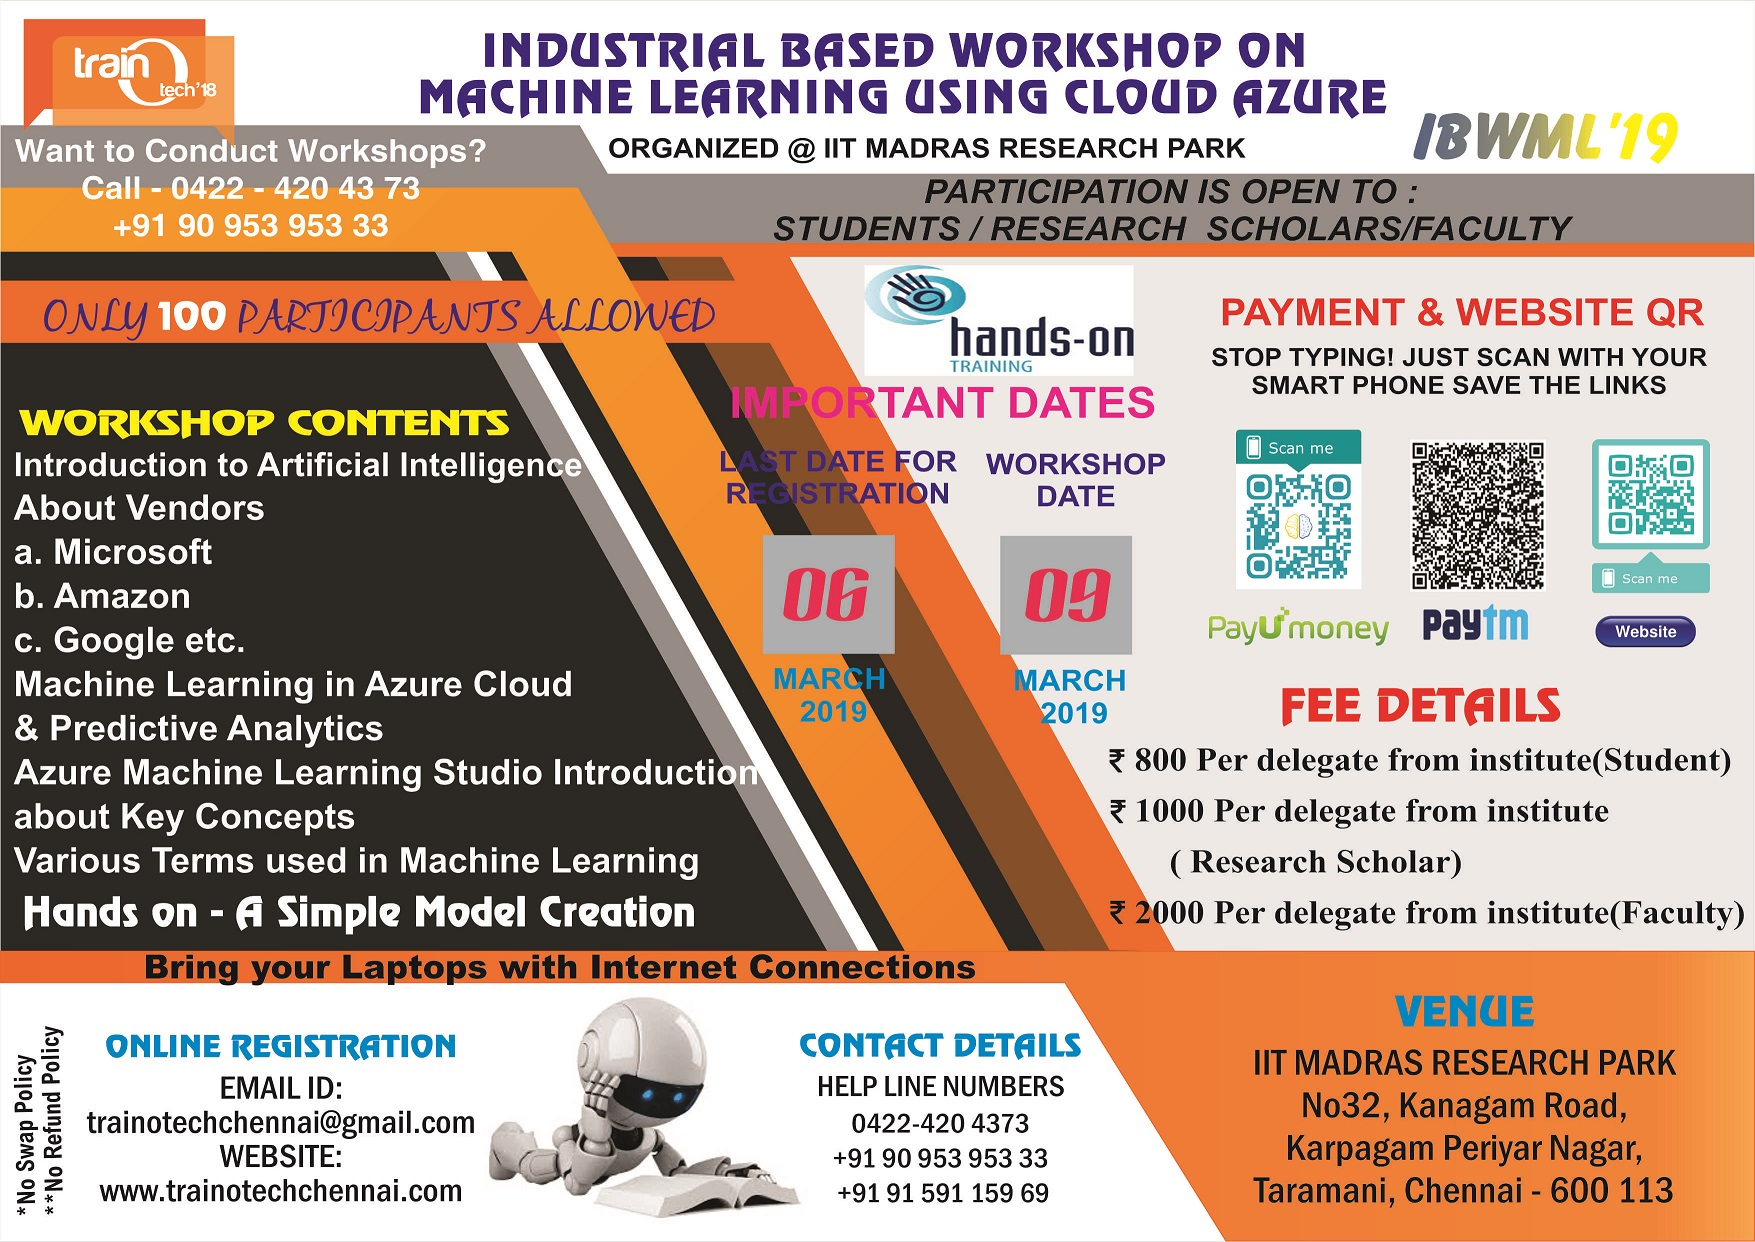 Industrial Based Workshop on Machine Learning Using Cloud Azure IBWML 2019